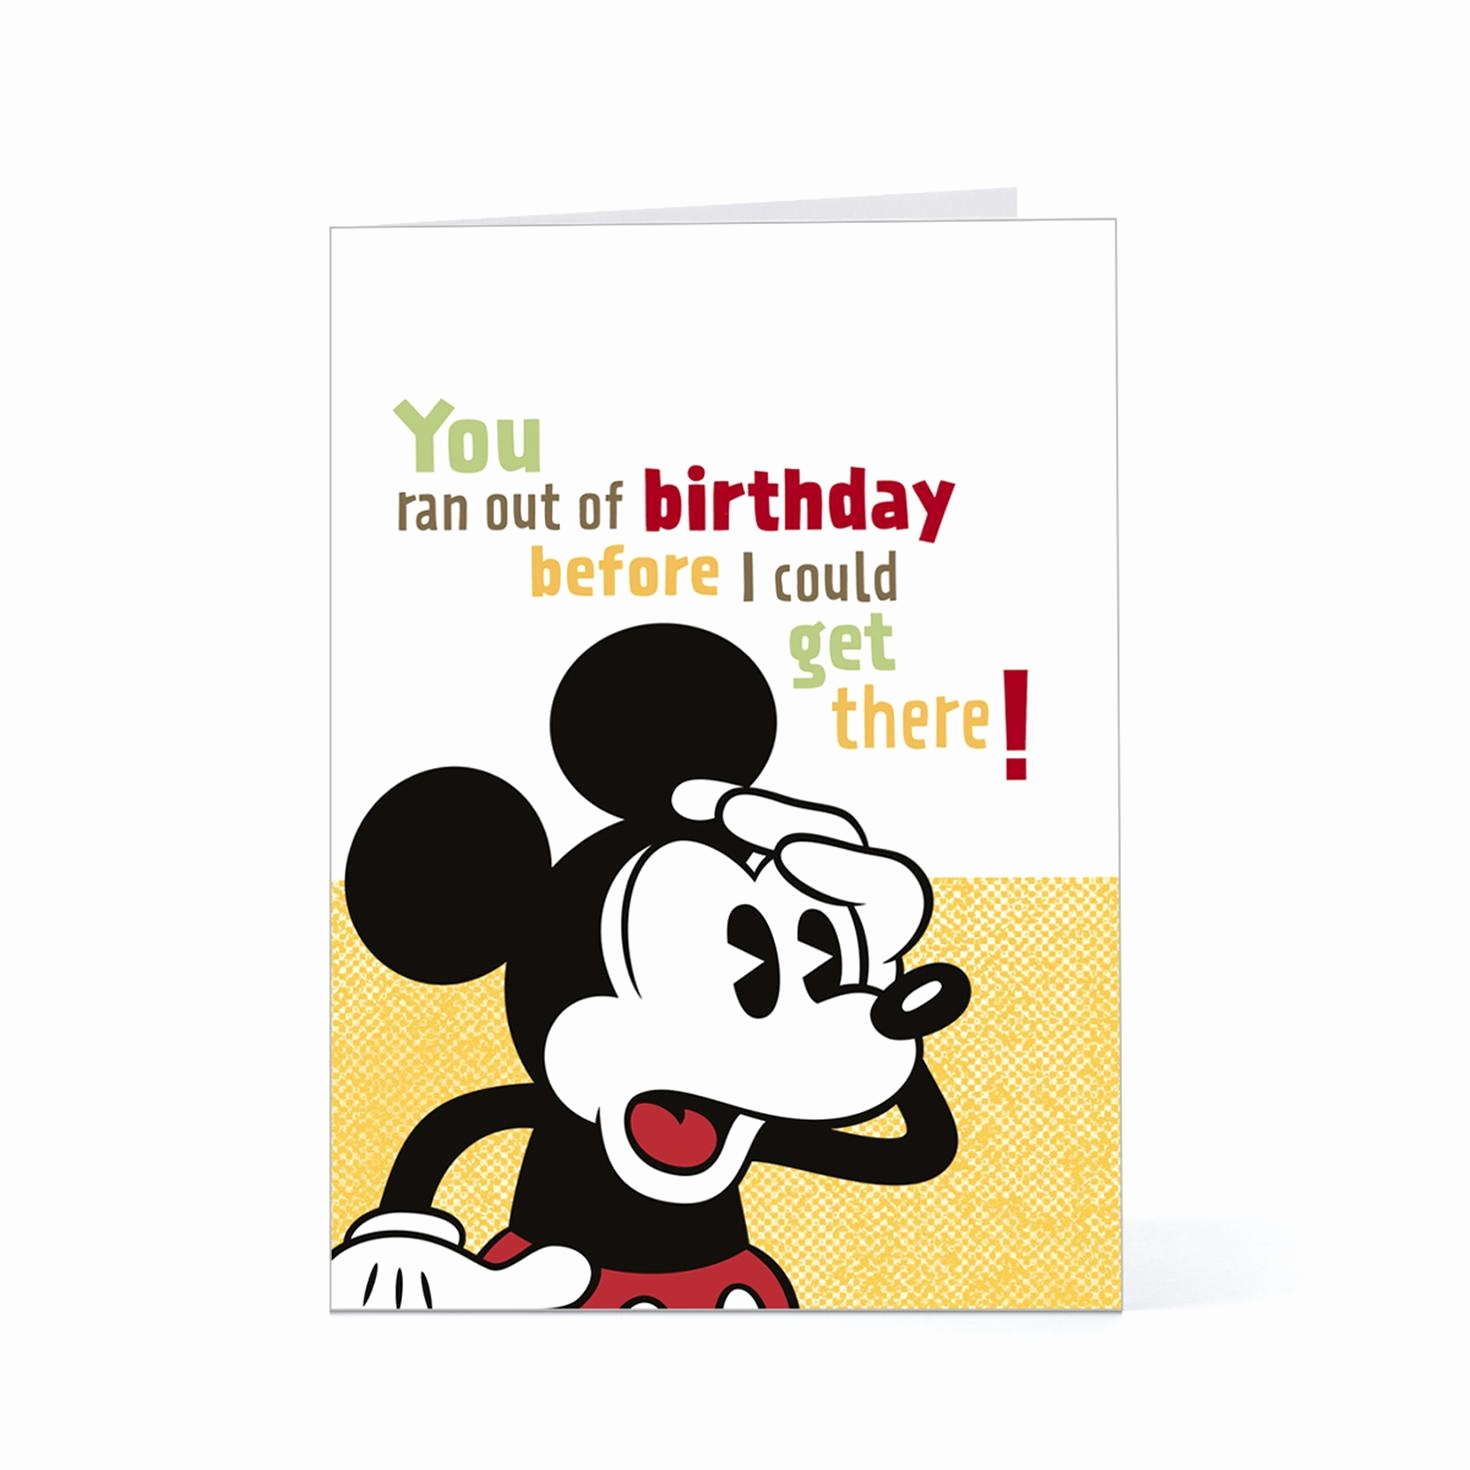 printable funny 70th birthday cards ; printable-funny-70th-birthday-cards-beautiful-vintage-mickey-birthday-greeting-card-1pgc3802-1470-1-1470-of-printable-funny-70th-birthday-cards